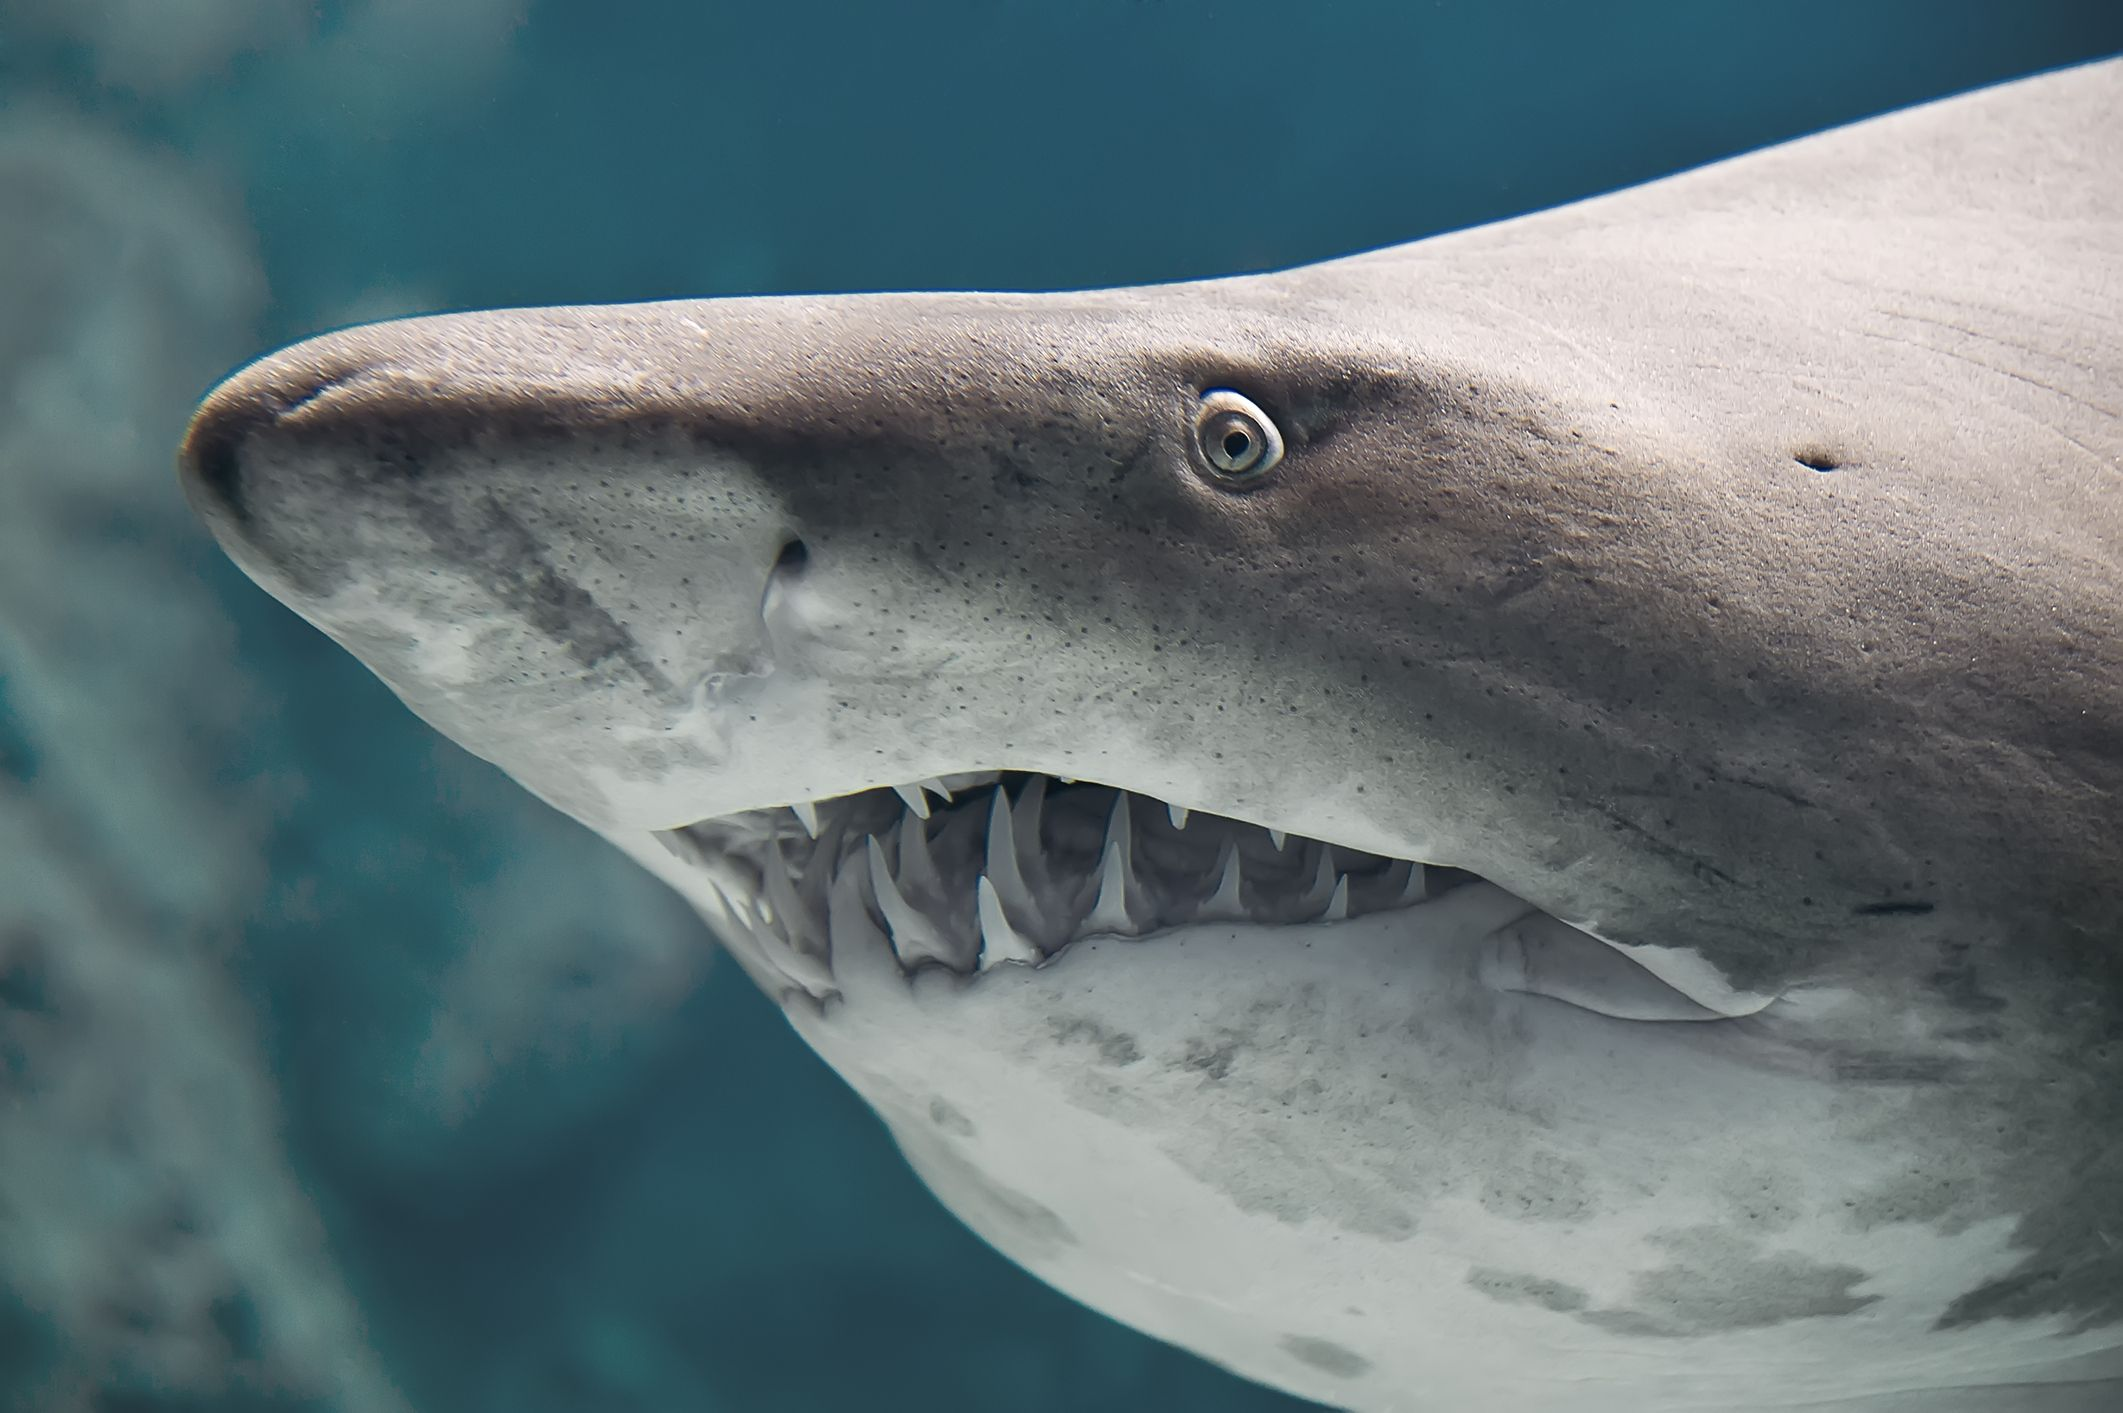 Dad Who Barely Survived Shark Attack: 'They Are Just